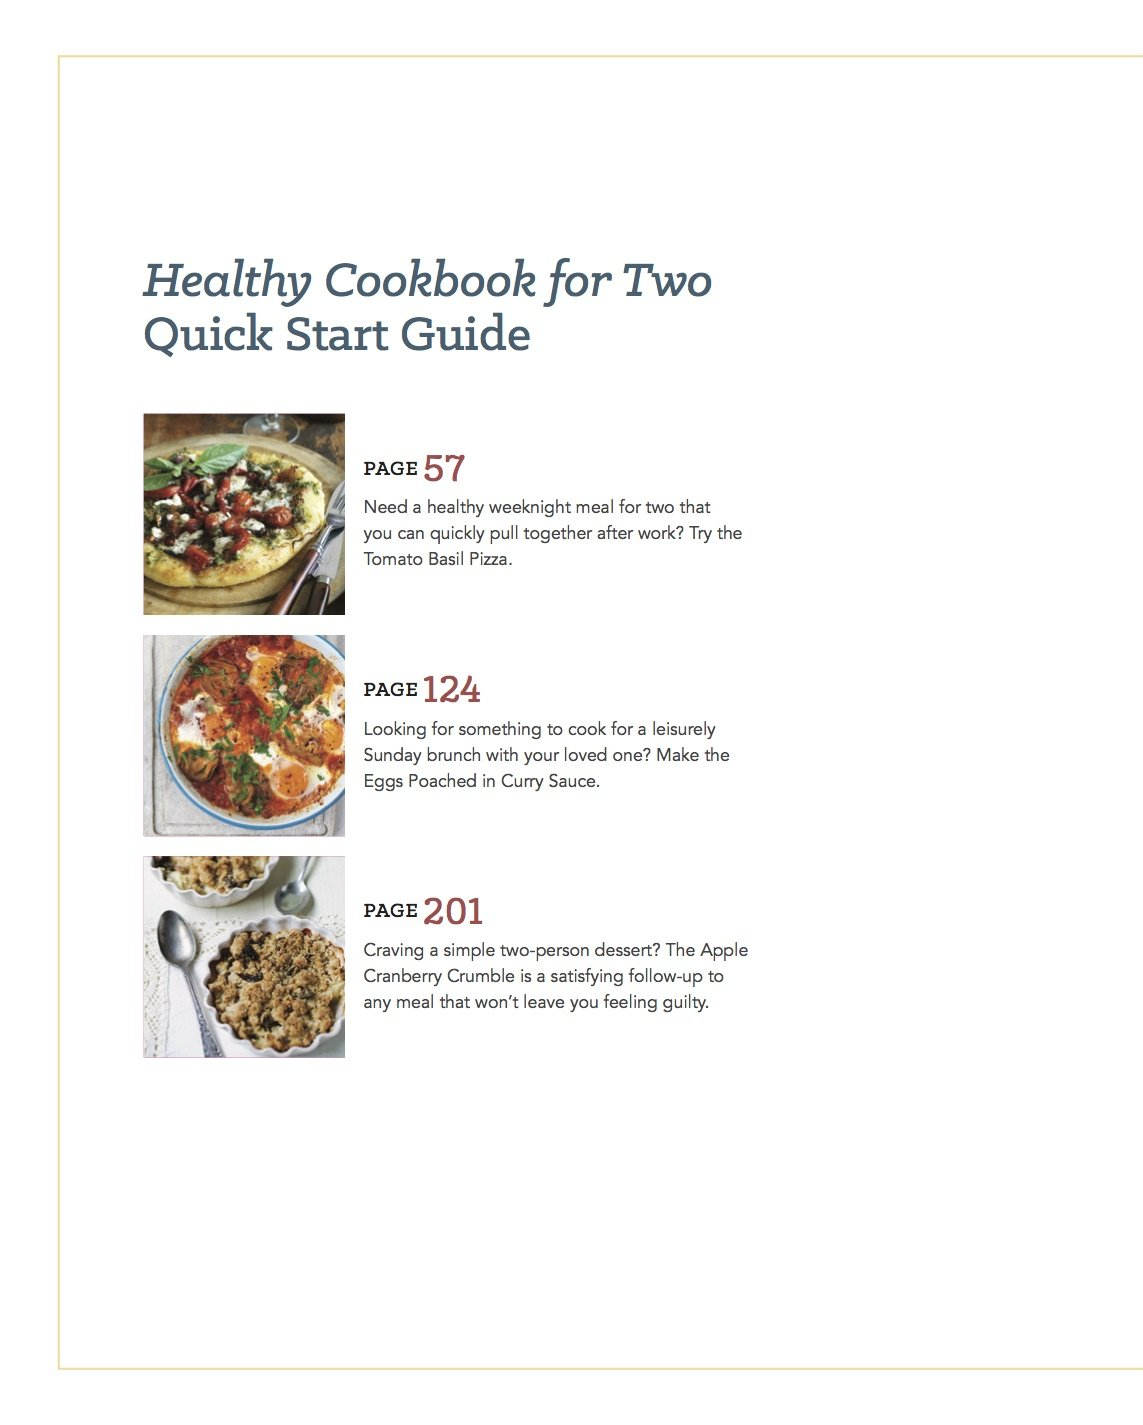 Healthy cookbook for two 175 simple delicious recipes to enjoy healthy cookbook for two 175 simple delicious recipes to enjoy cooking for two rockridge press 8601423540207 amazon books forumfinder